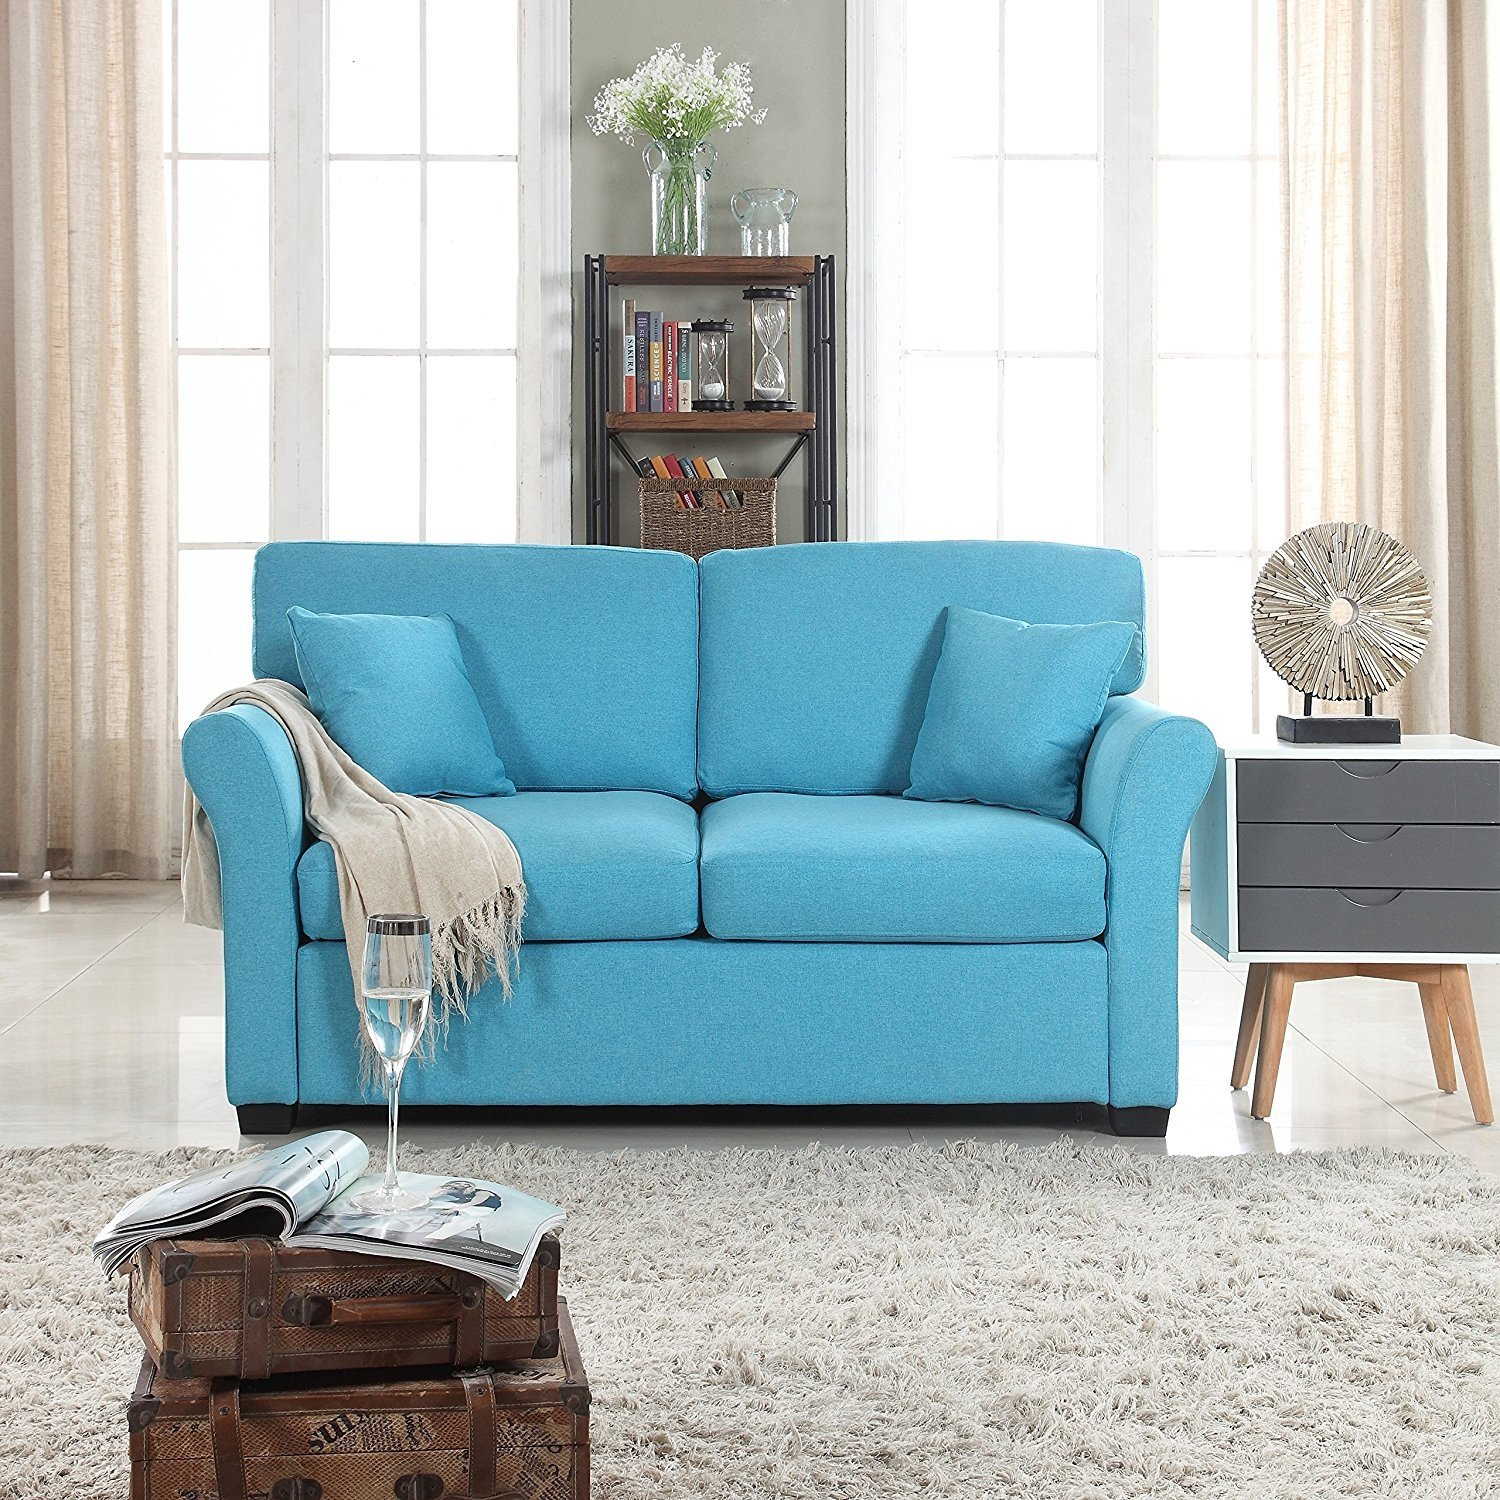 Details about Comfortable Fabric Loveseat Sofa for Small Living Room, Linen  Couch Blue